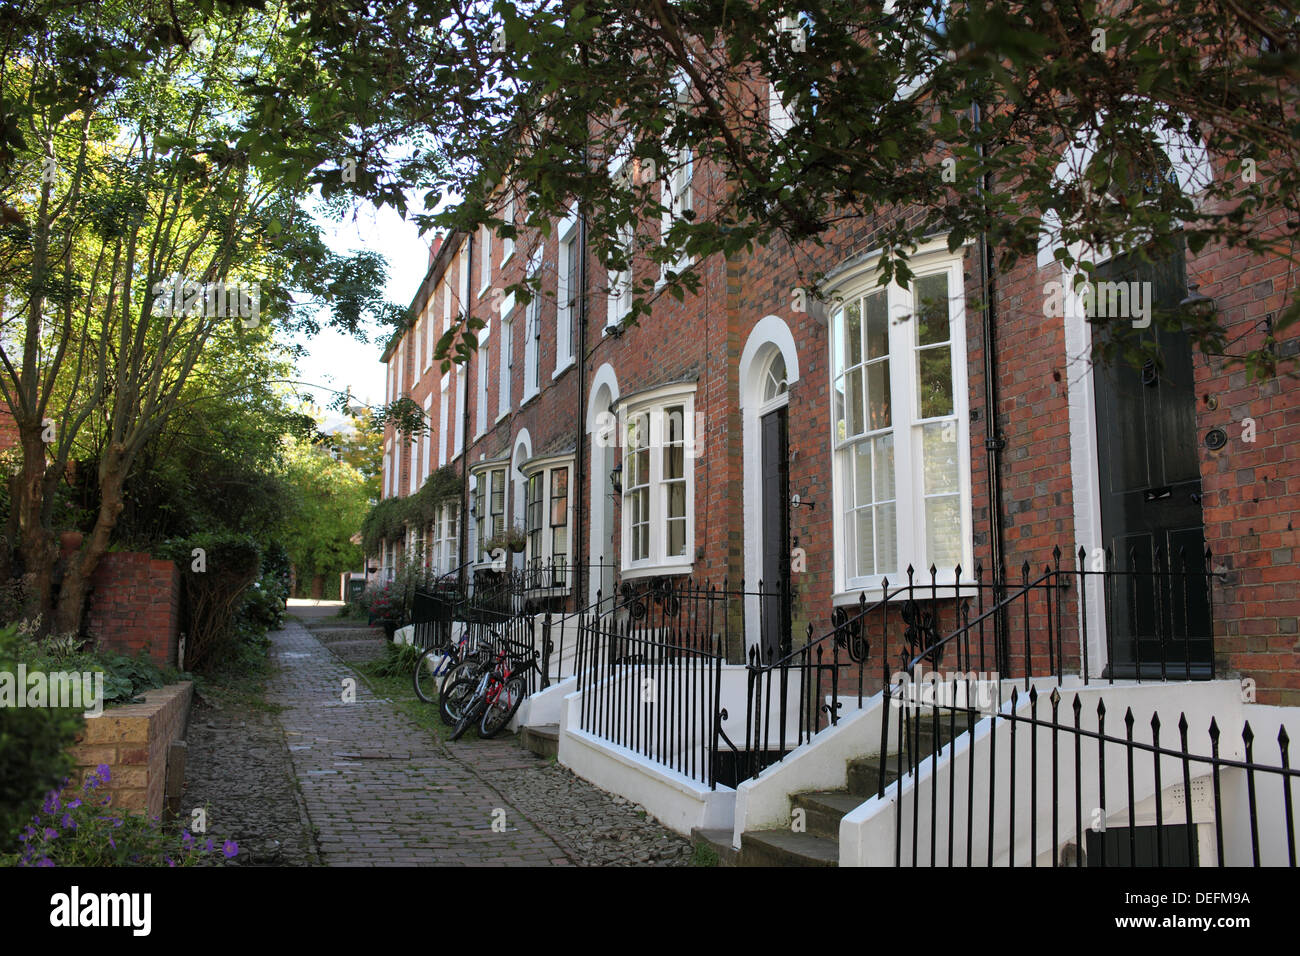 Bedford Terrace, an early nineteenth century terrace of houses in the centre of Tunbridge Wells, Kent. Grade II listed buildings - Stock Image